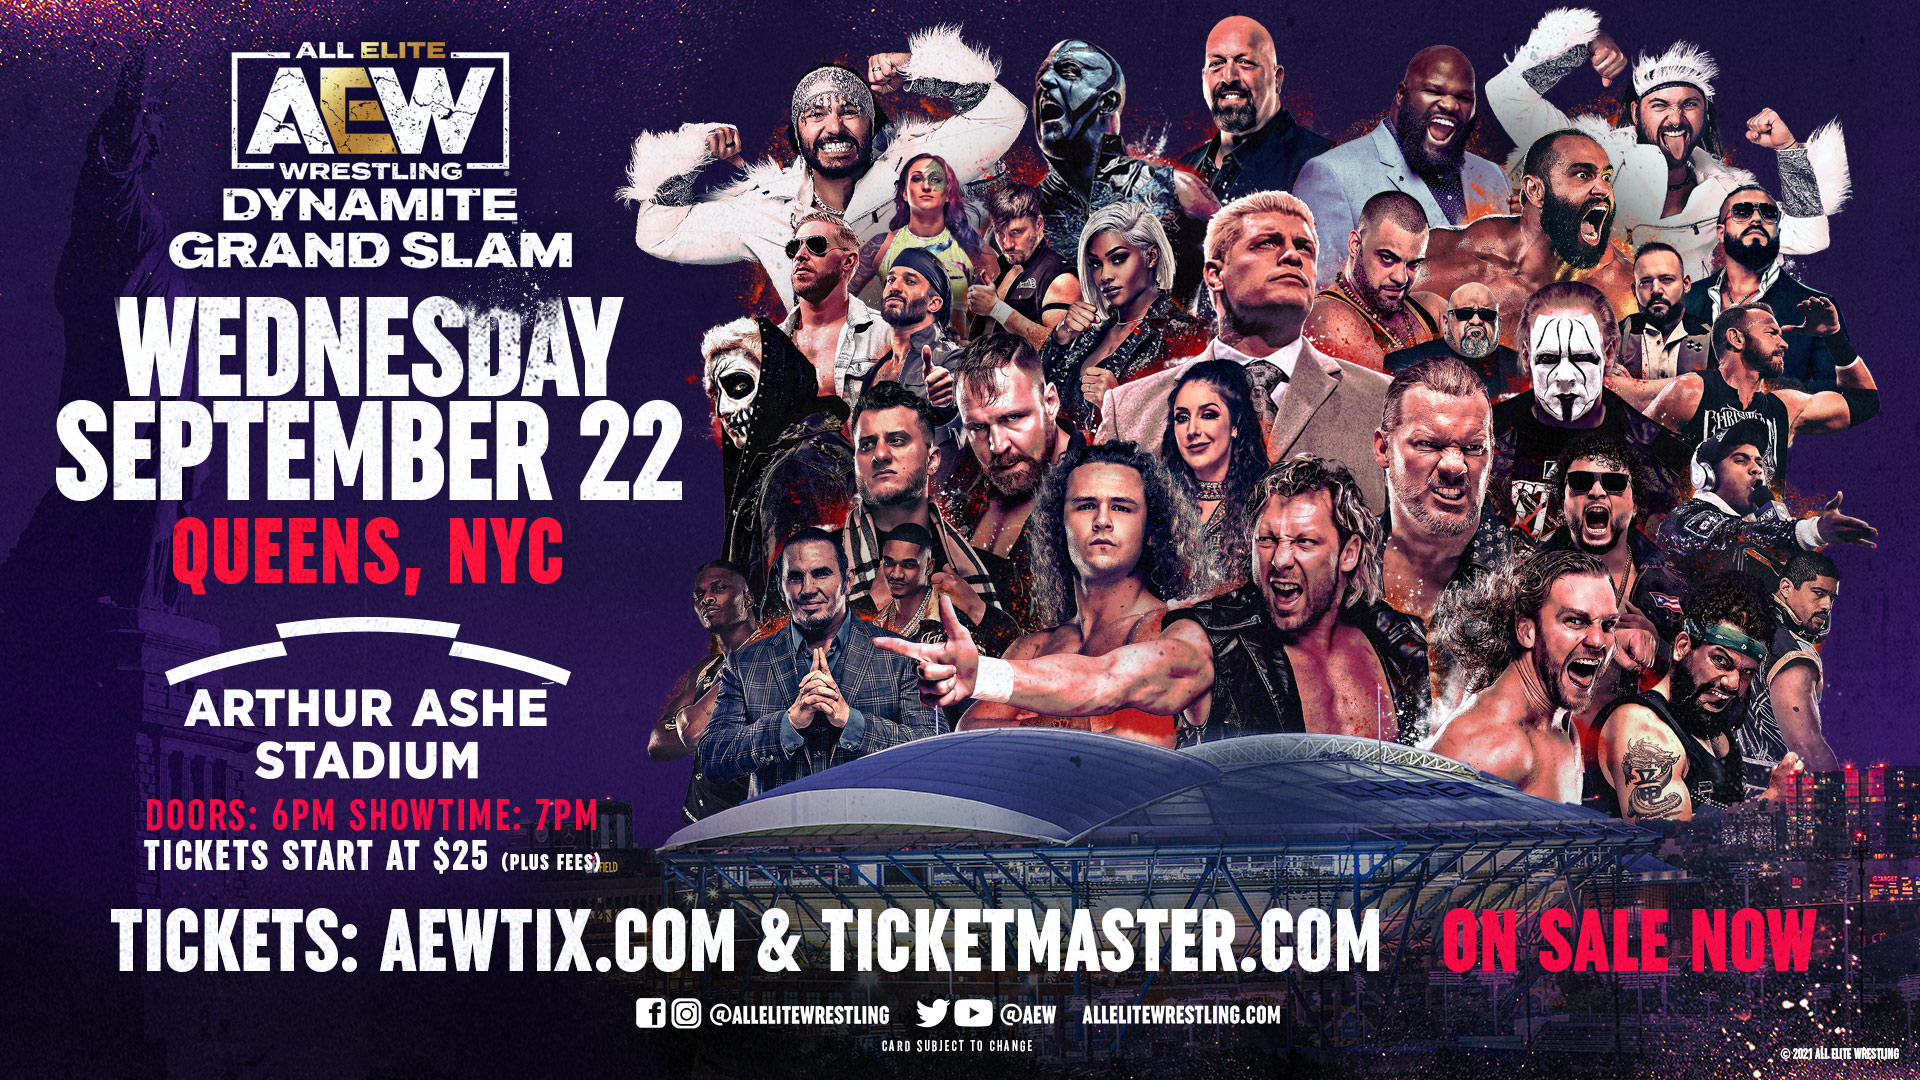 AEW Dynamite: Grand Slam Reportedly Almost Sold Out